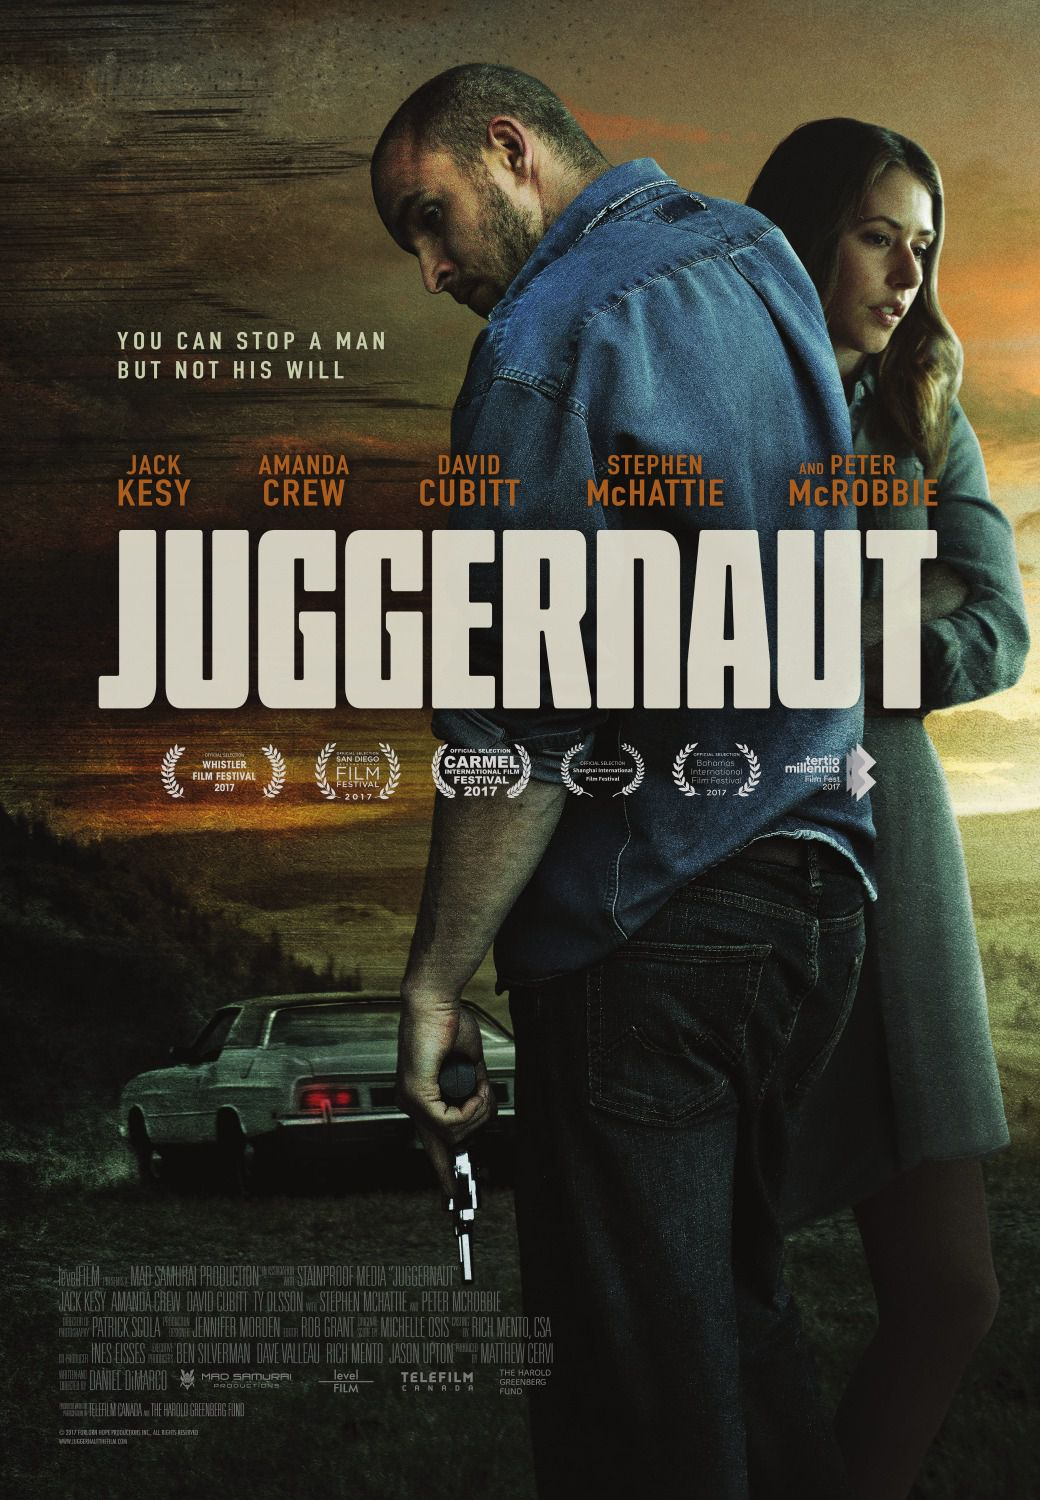 Juggernaut - can stop a man but not his will - Cast: Jack Kesy, Amanda Crew, David Cubitt, Stephen McHattie, Peter McRobbie - film poster 2018